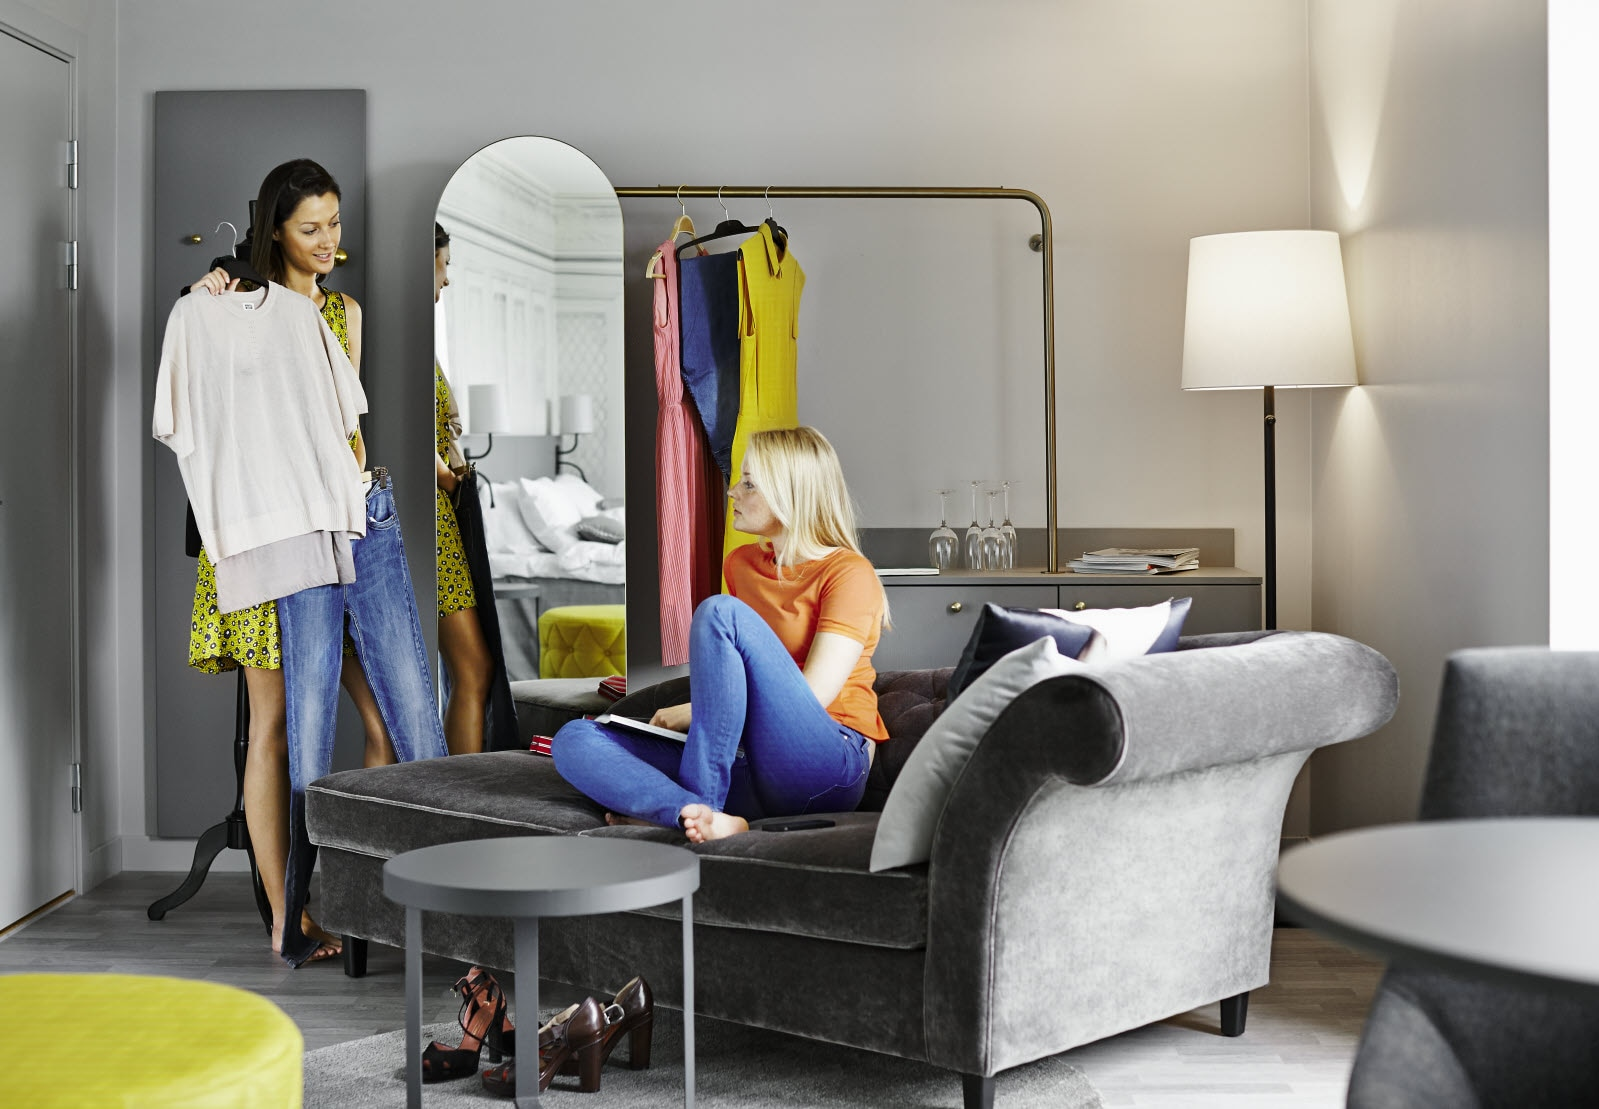 ccc-spring_2014-Rubinen-bedroom-fashion-clothes-gi.jpg